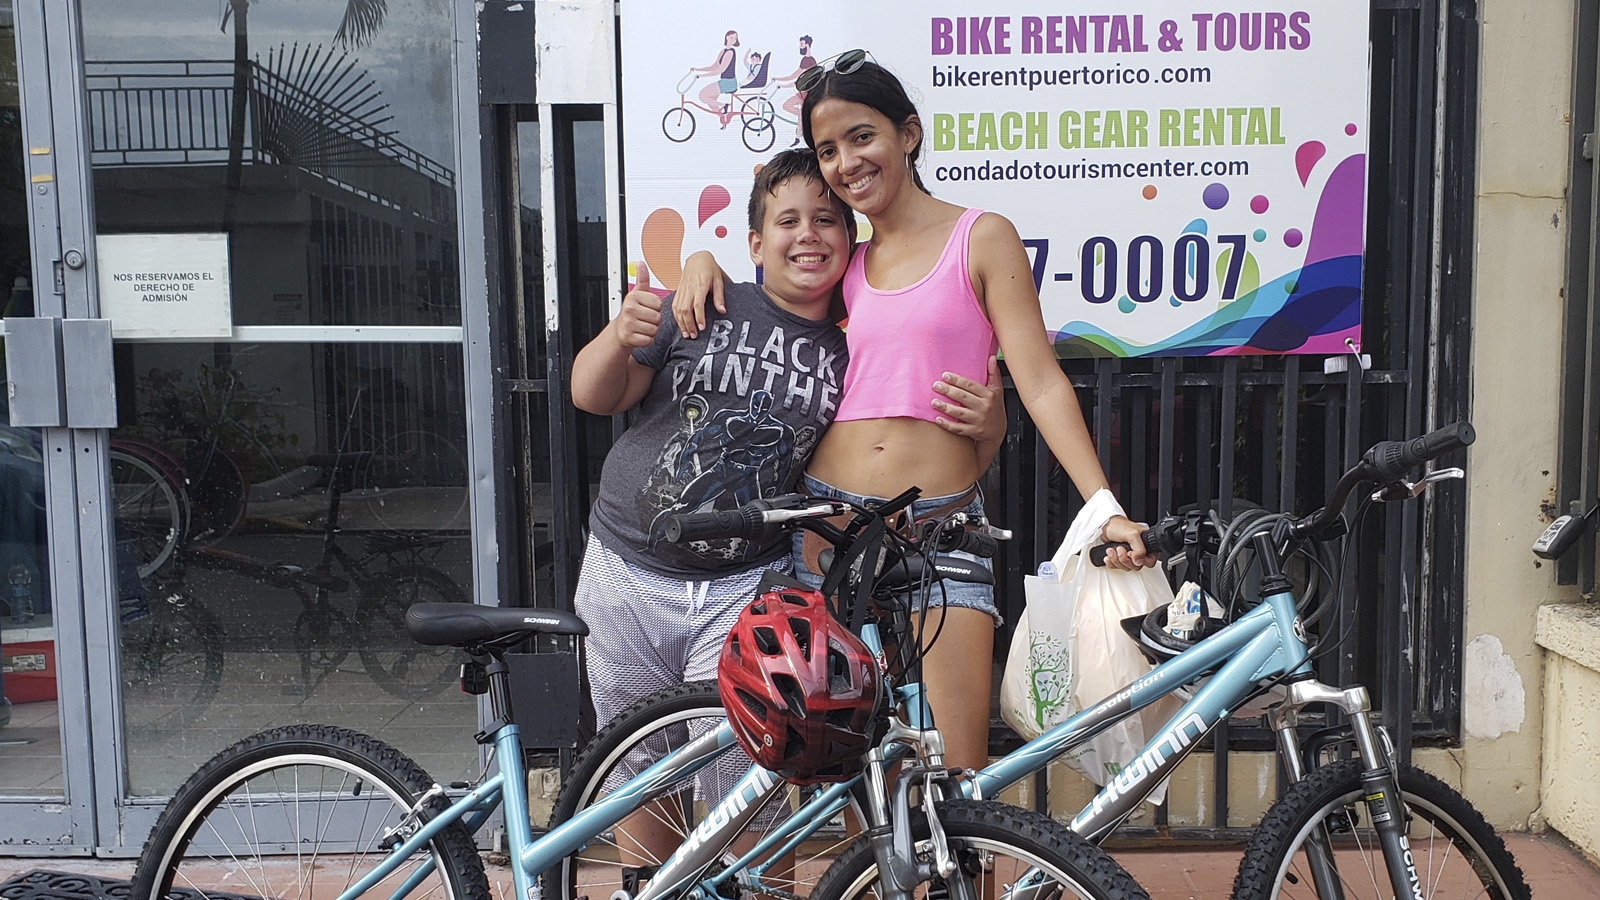 rent-the-bike in san juan bikerentpuertorico